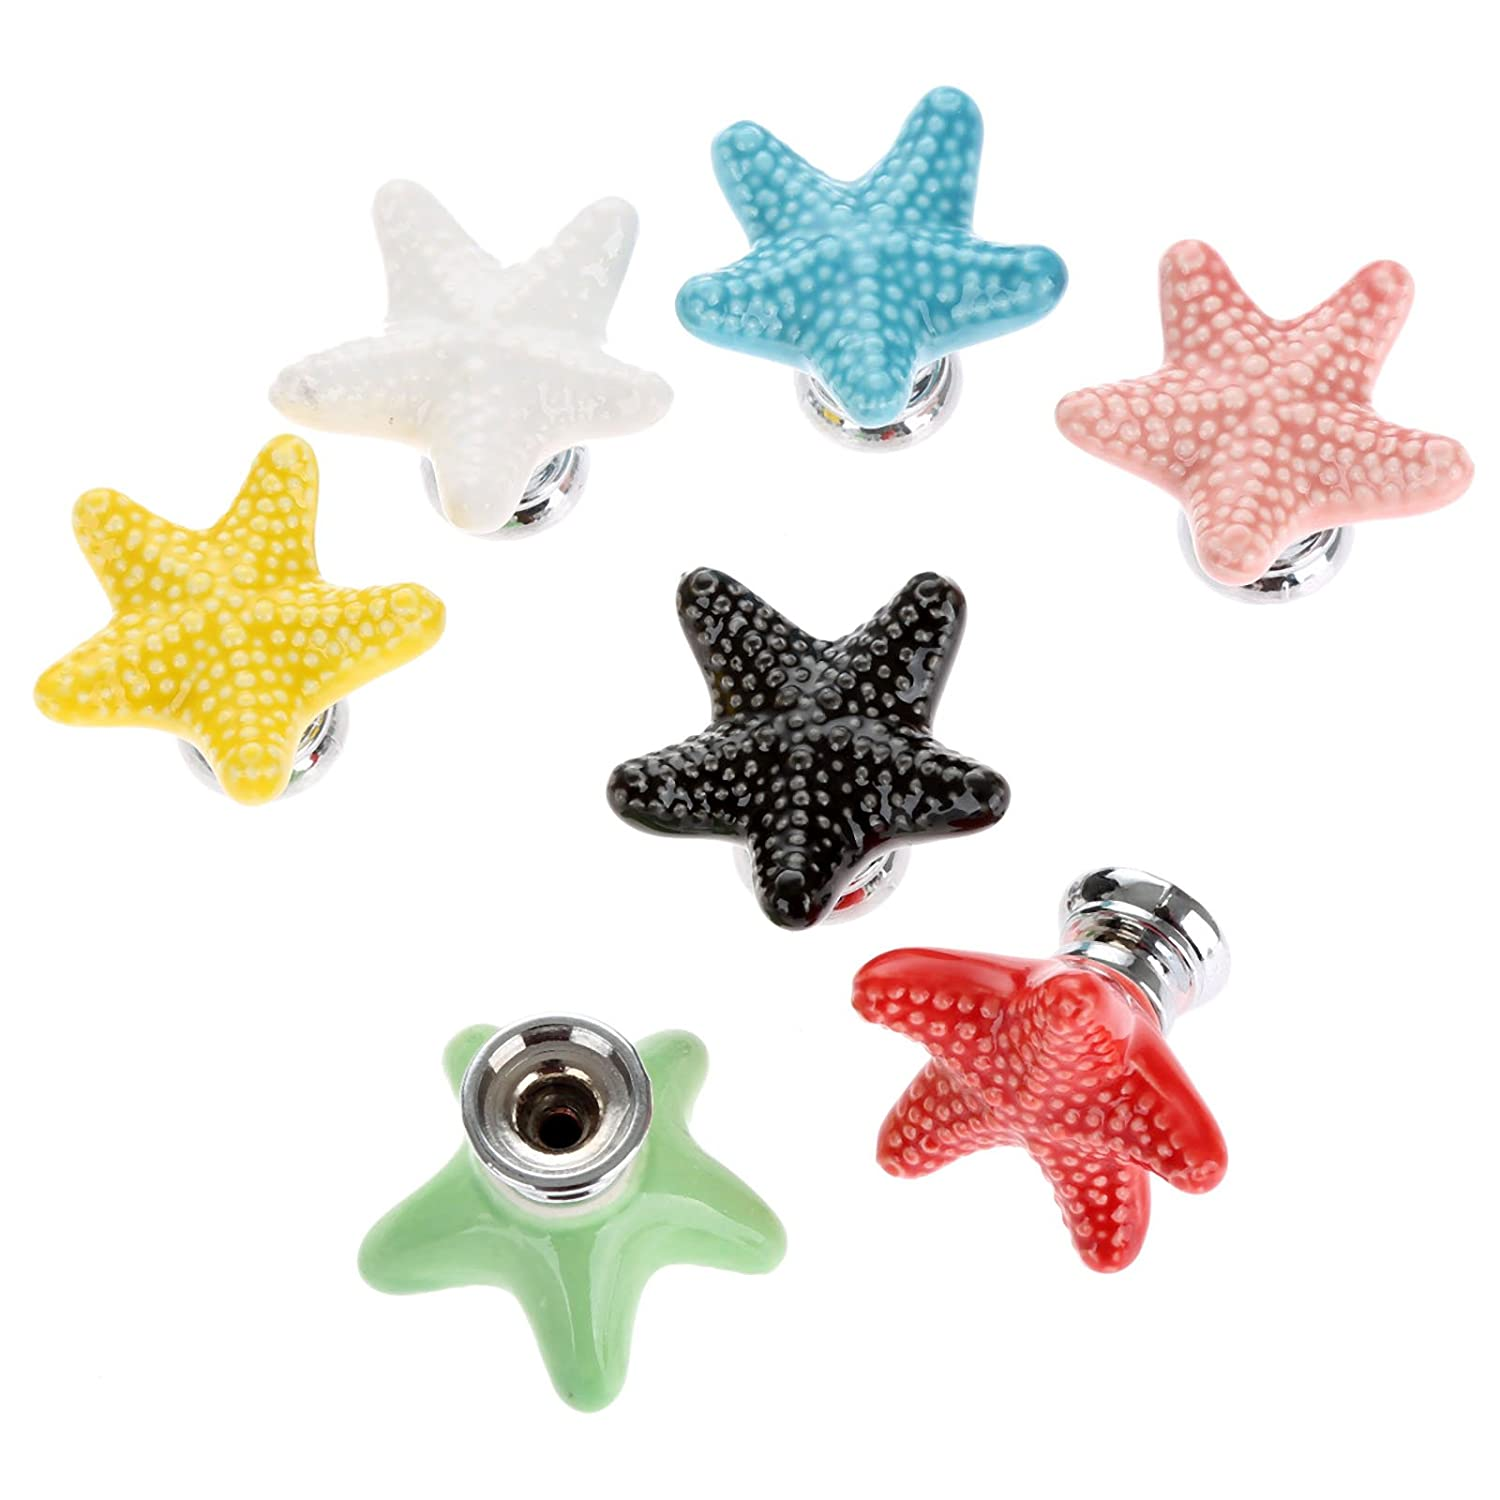 over cabinet drawers home product shipping overstock orders pack drawer of door pulls bronze or knob metal starfish dresser garden pull on free